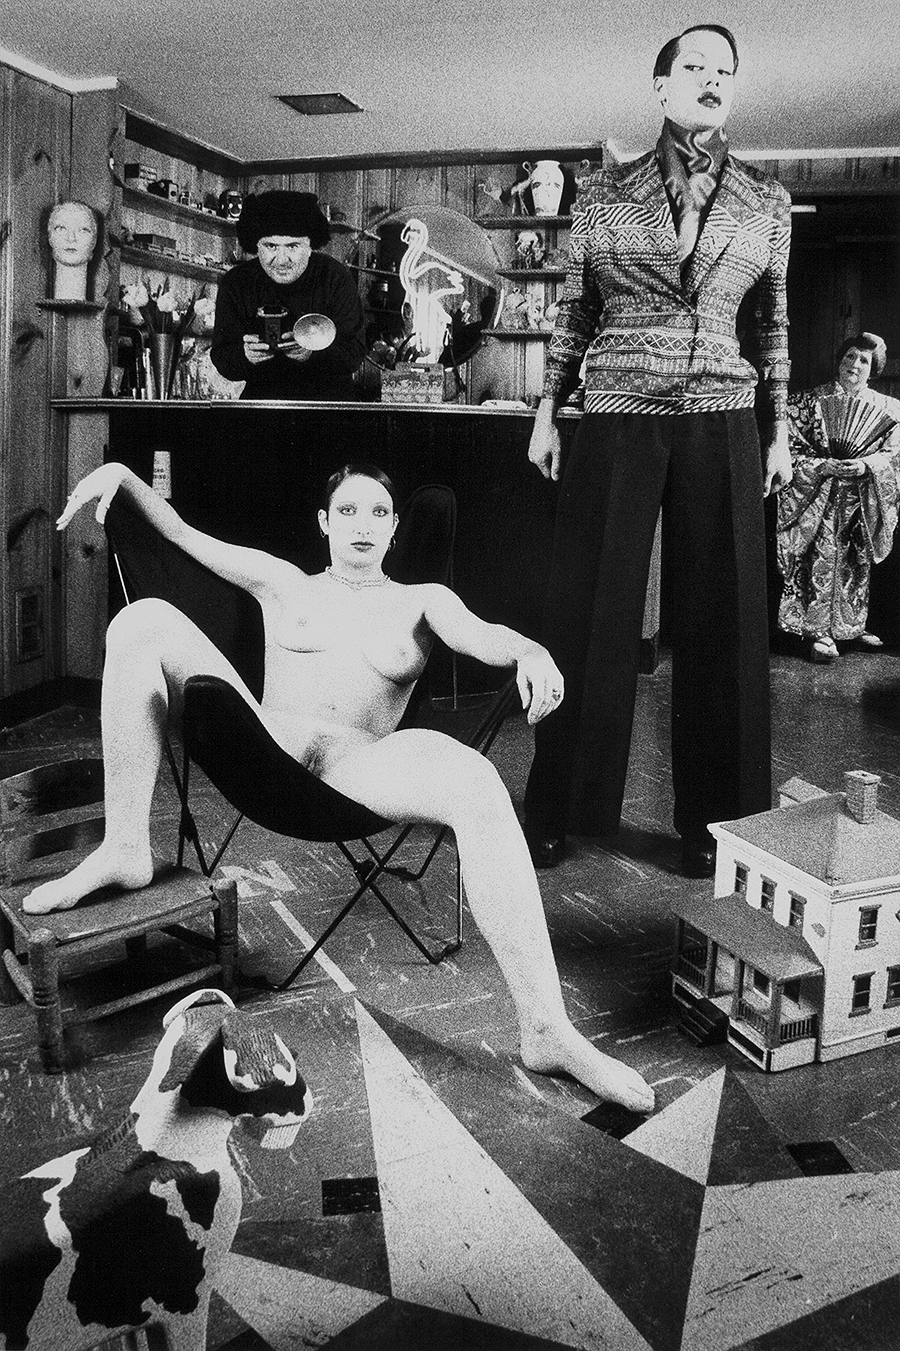 Tony_Ward_early_work_tableaux_vivant_afternoo_with_the_siegals_full_frontal_nudity